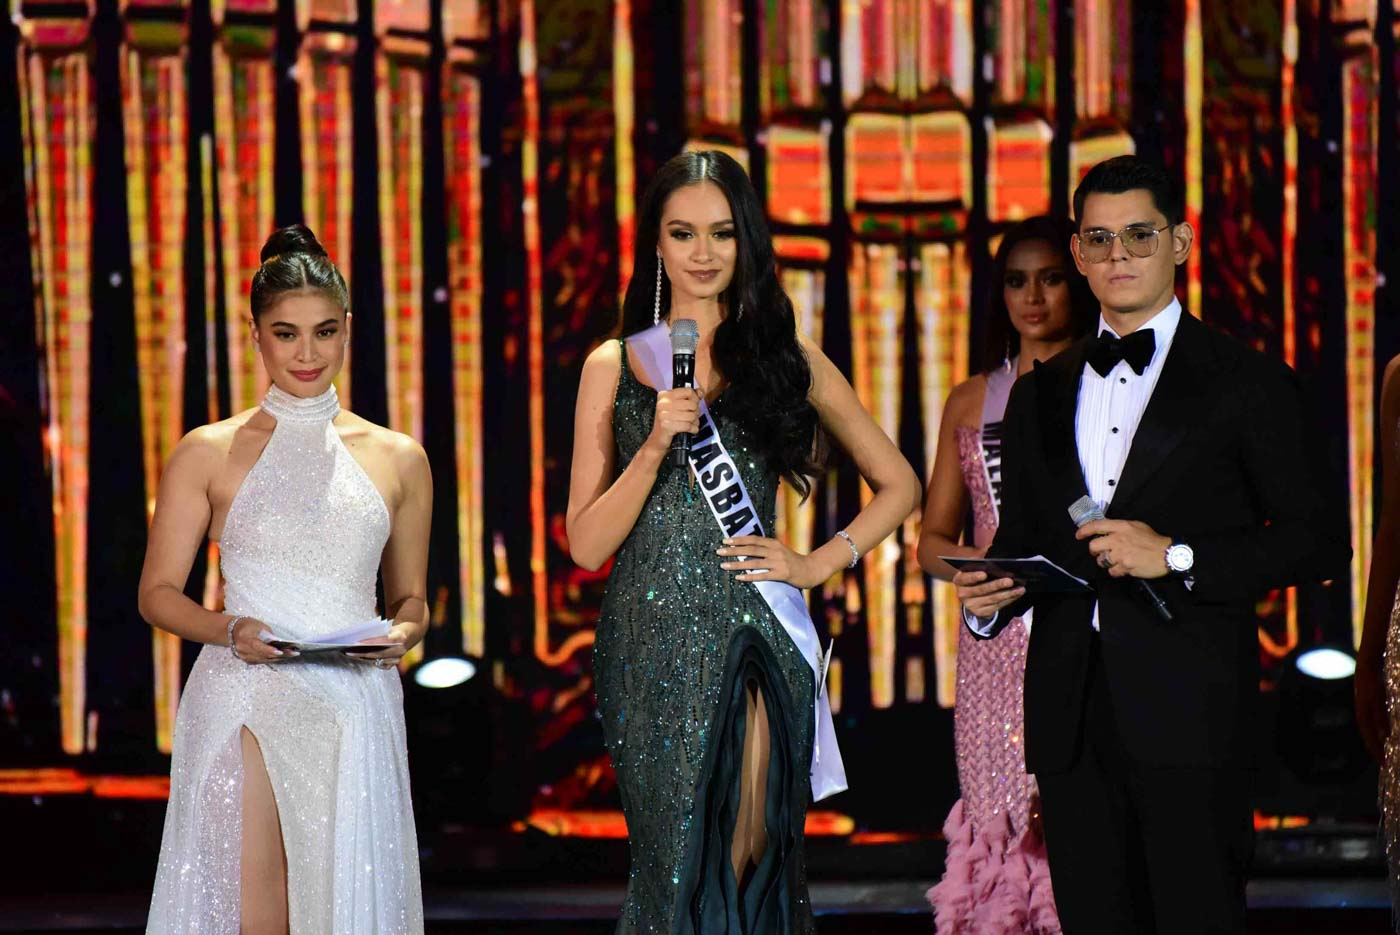 Photo recap: Binibining Pilipinas 2019 coronation night